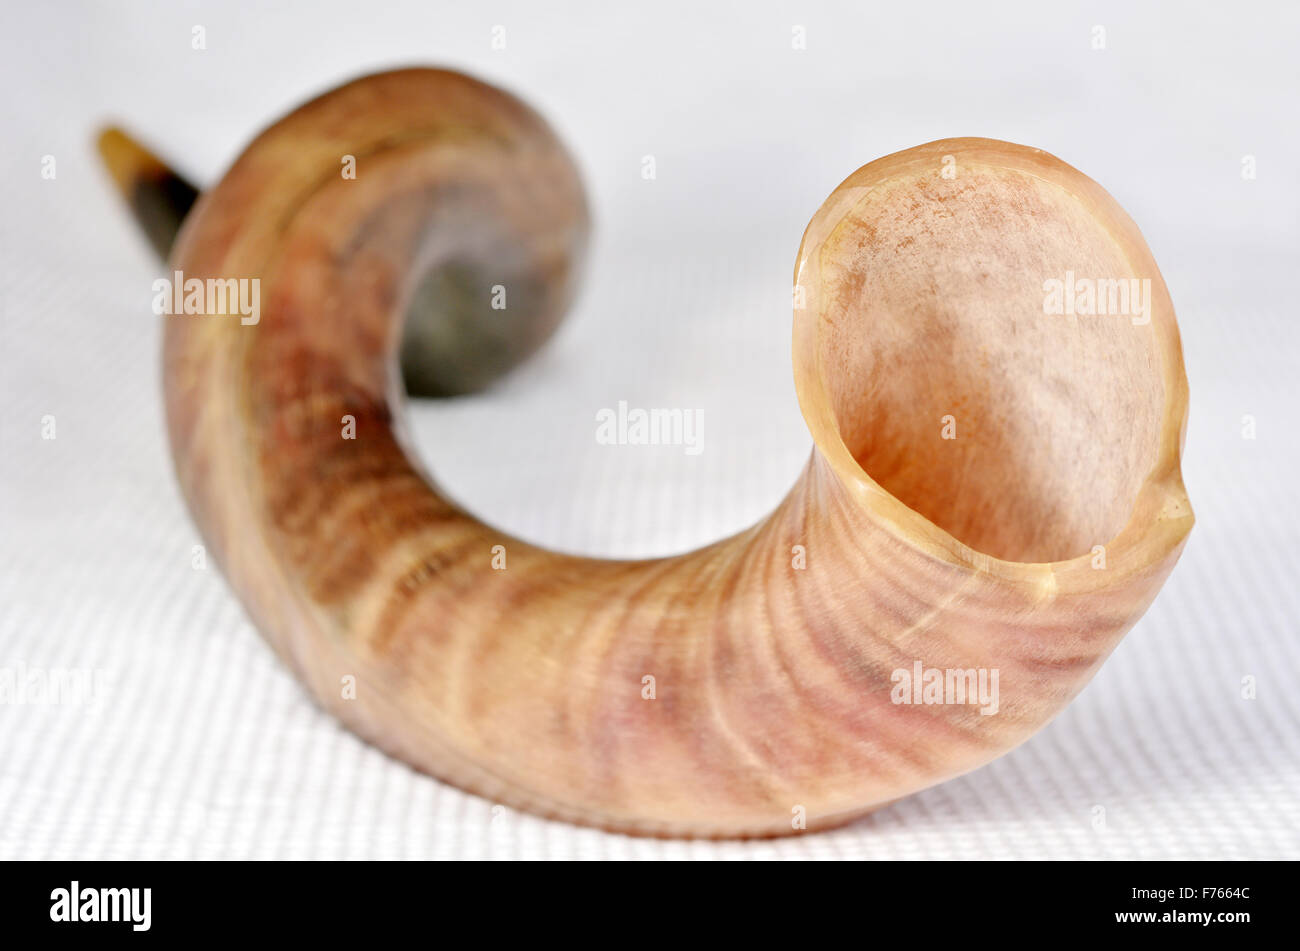 Selective Focus Of Shofar Horn From The Horn Of A Greater Kudu On